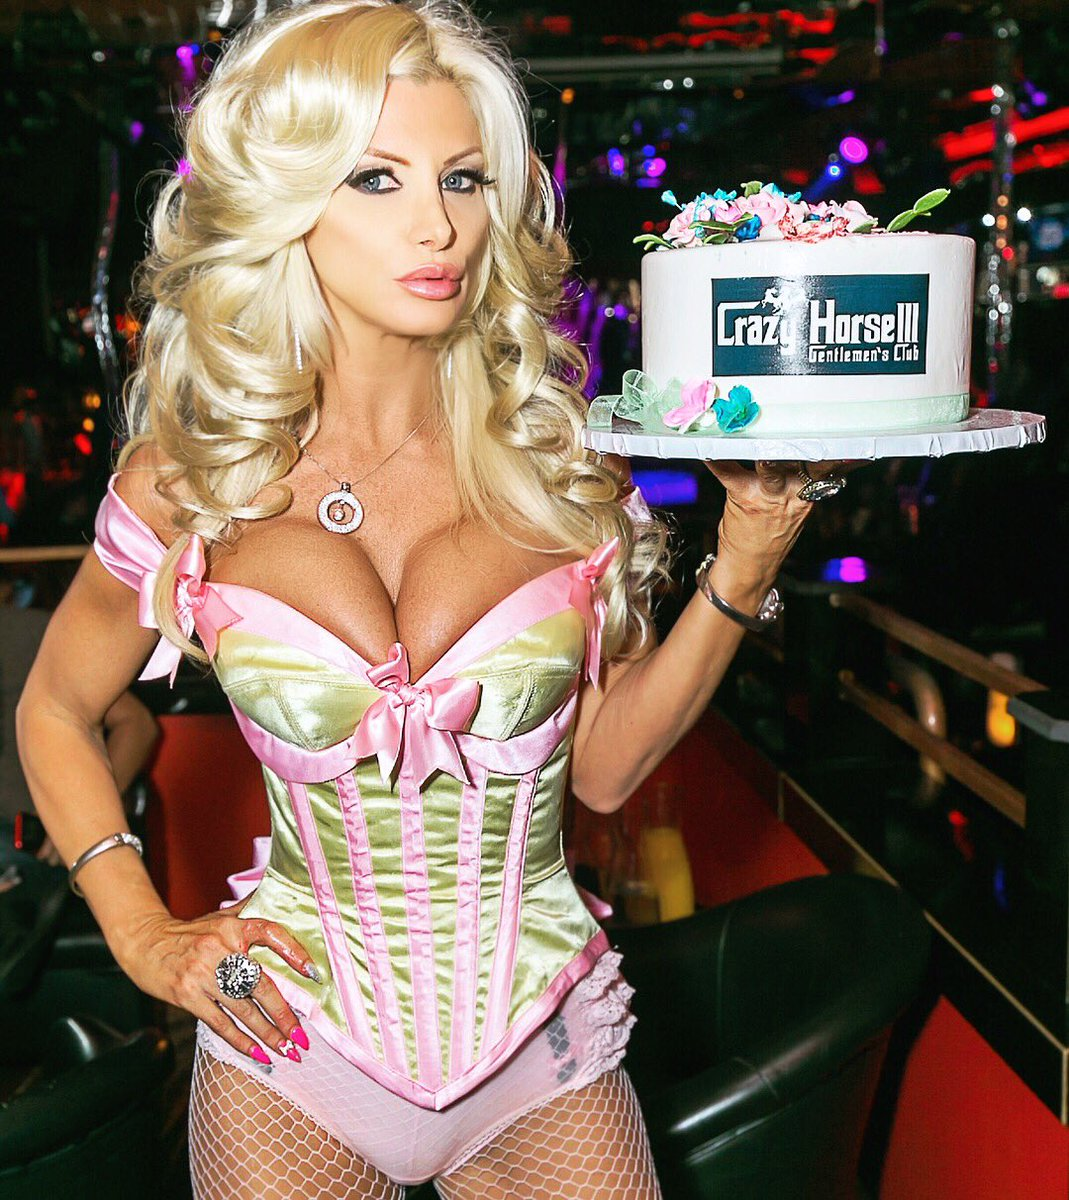 Who wants a piece? Lol for #MyBirthday #brittanyandrews 🎂🎊 KkKarXQxuU